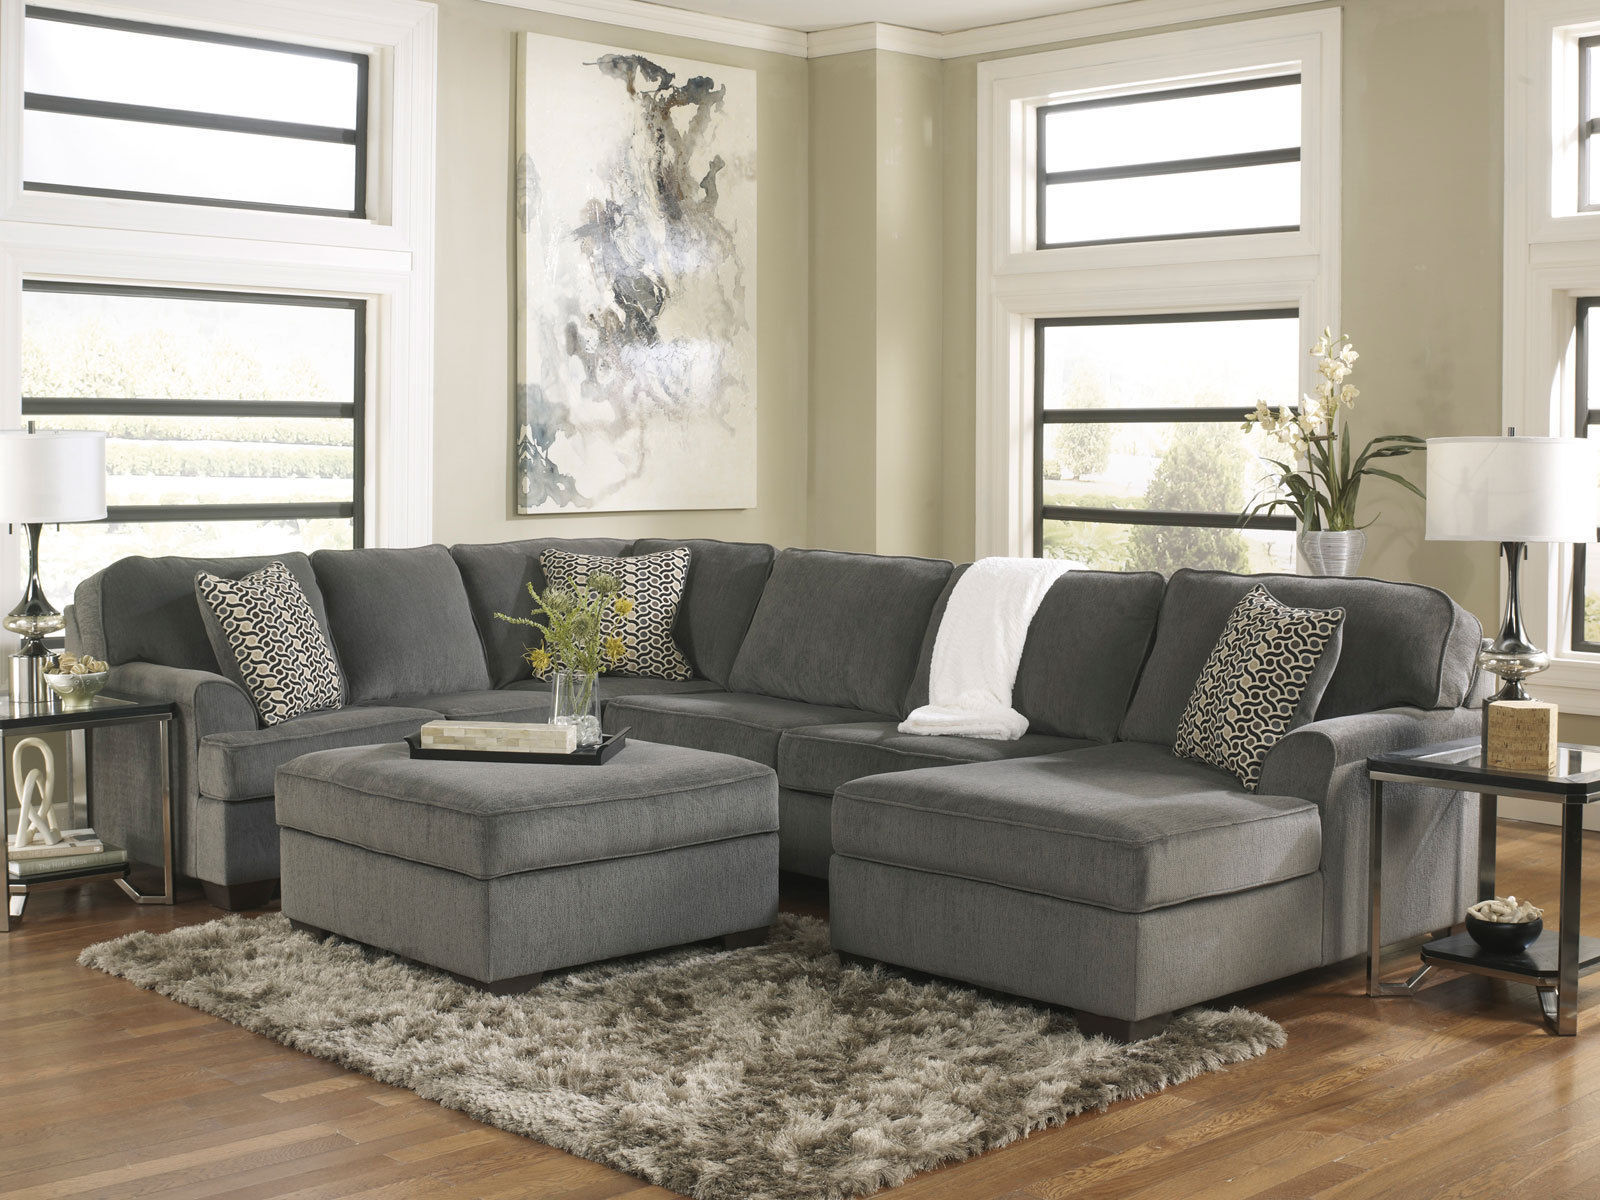 Sole oversized modern gray fabric sofa couch sectional set for Couch sofa set